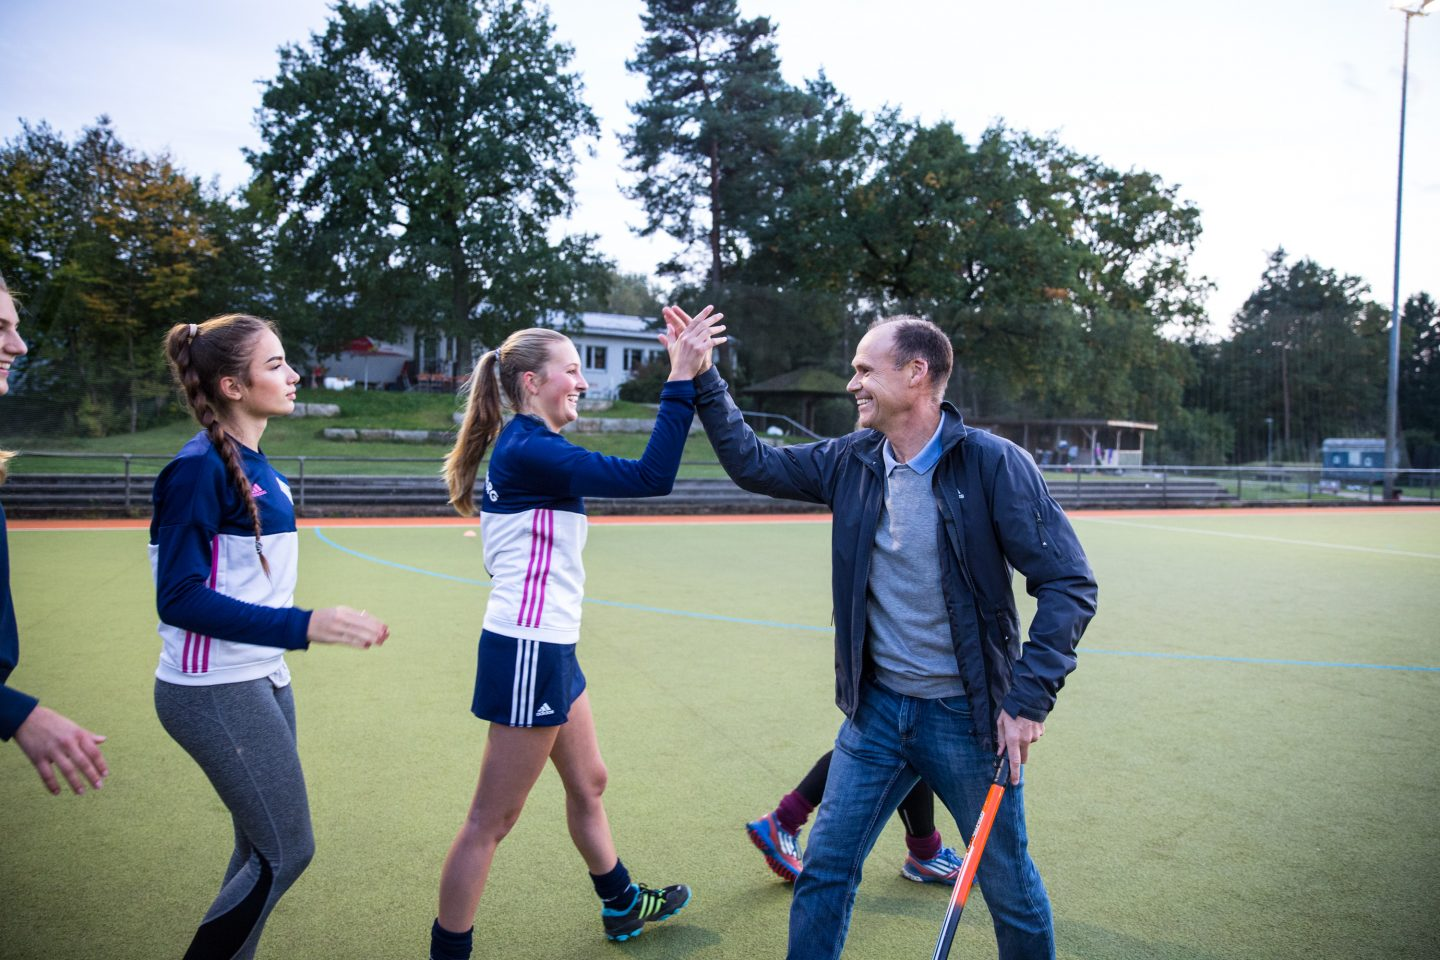 The coach is high-fiving his female players.